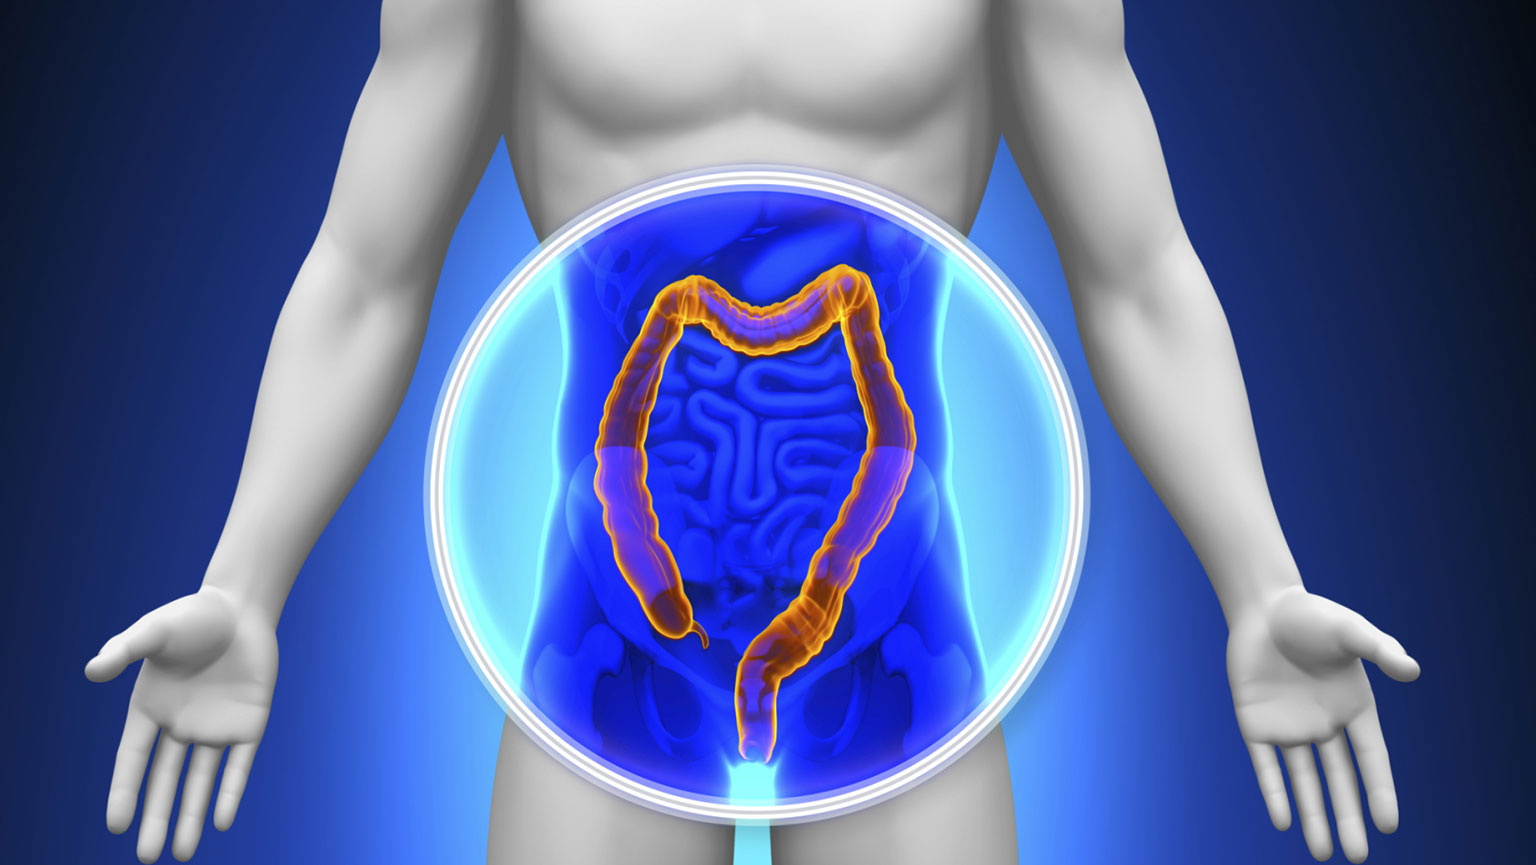 Digestive System—Physiology of the Small Intestine, Colon, and Rectum